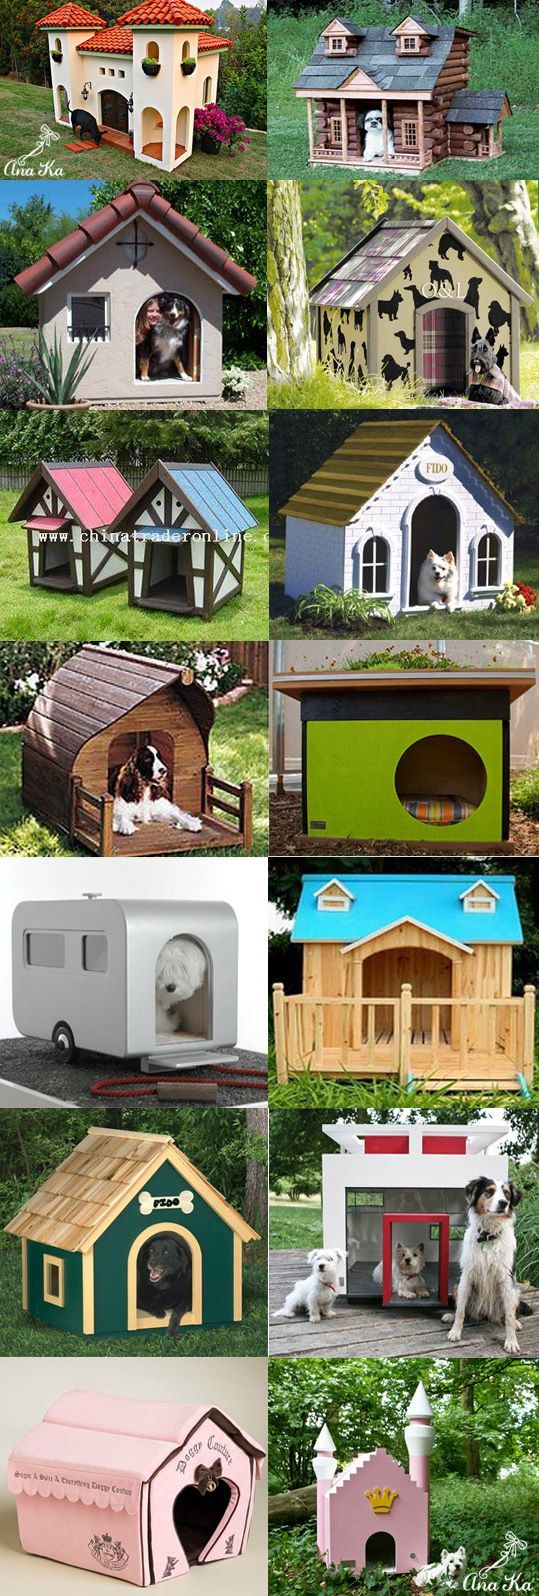 These are beautiful dog houses!  Happy Dog House Repair Month!